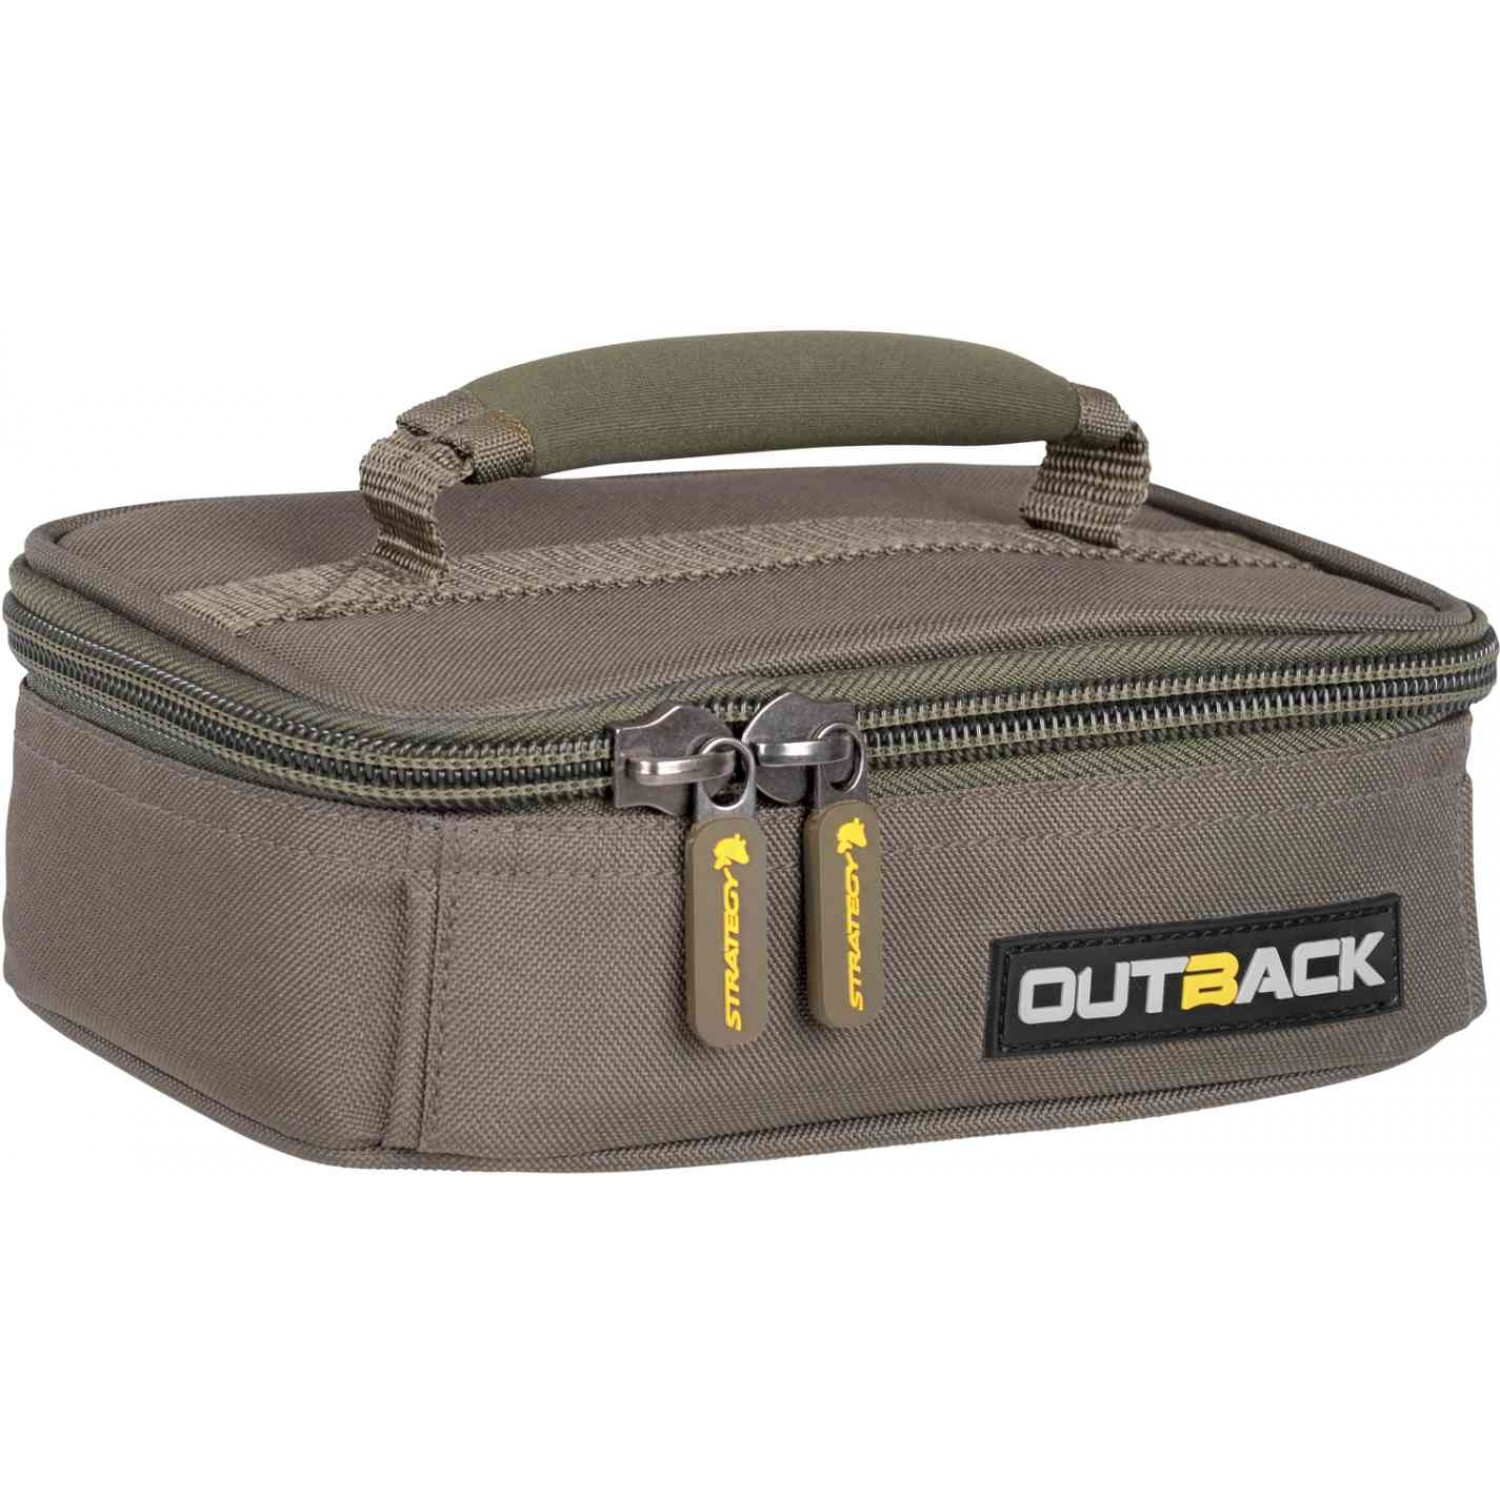 Spro Strategy Outback Lead Pouch